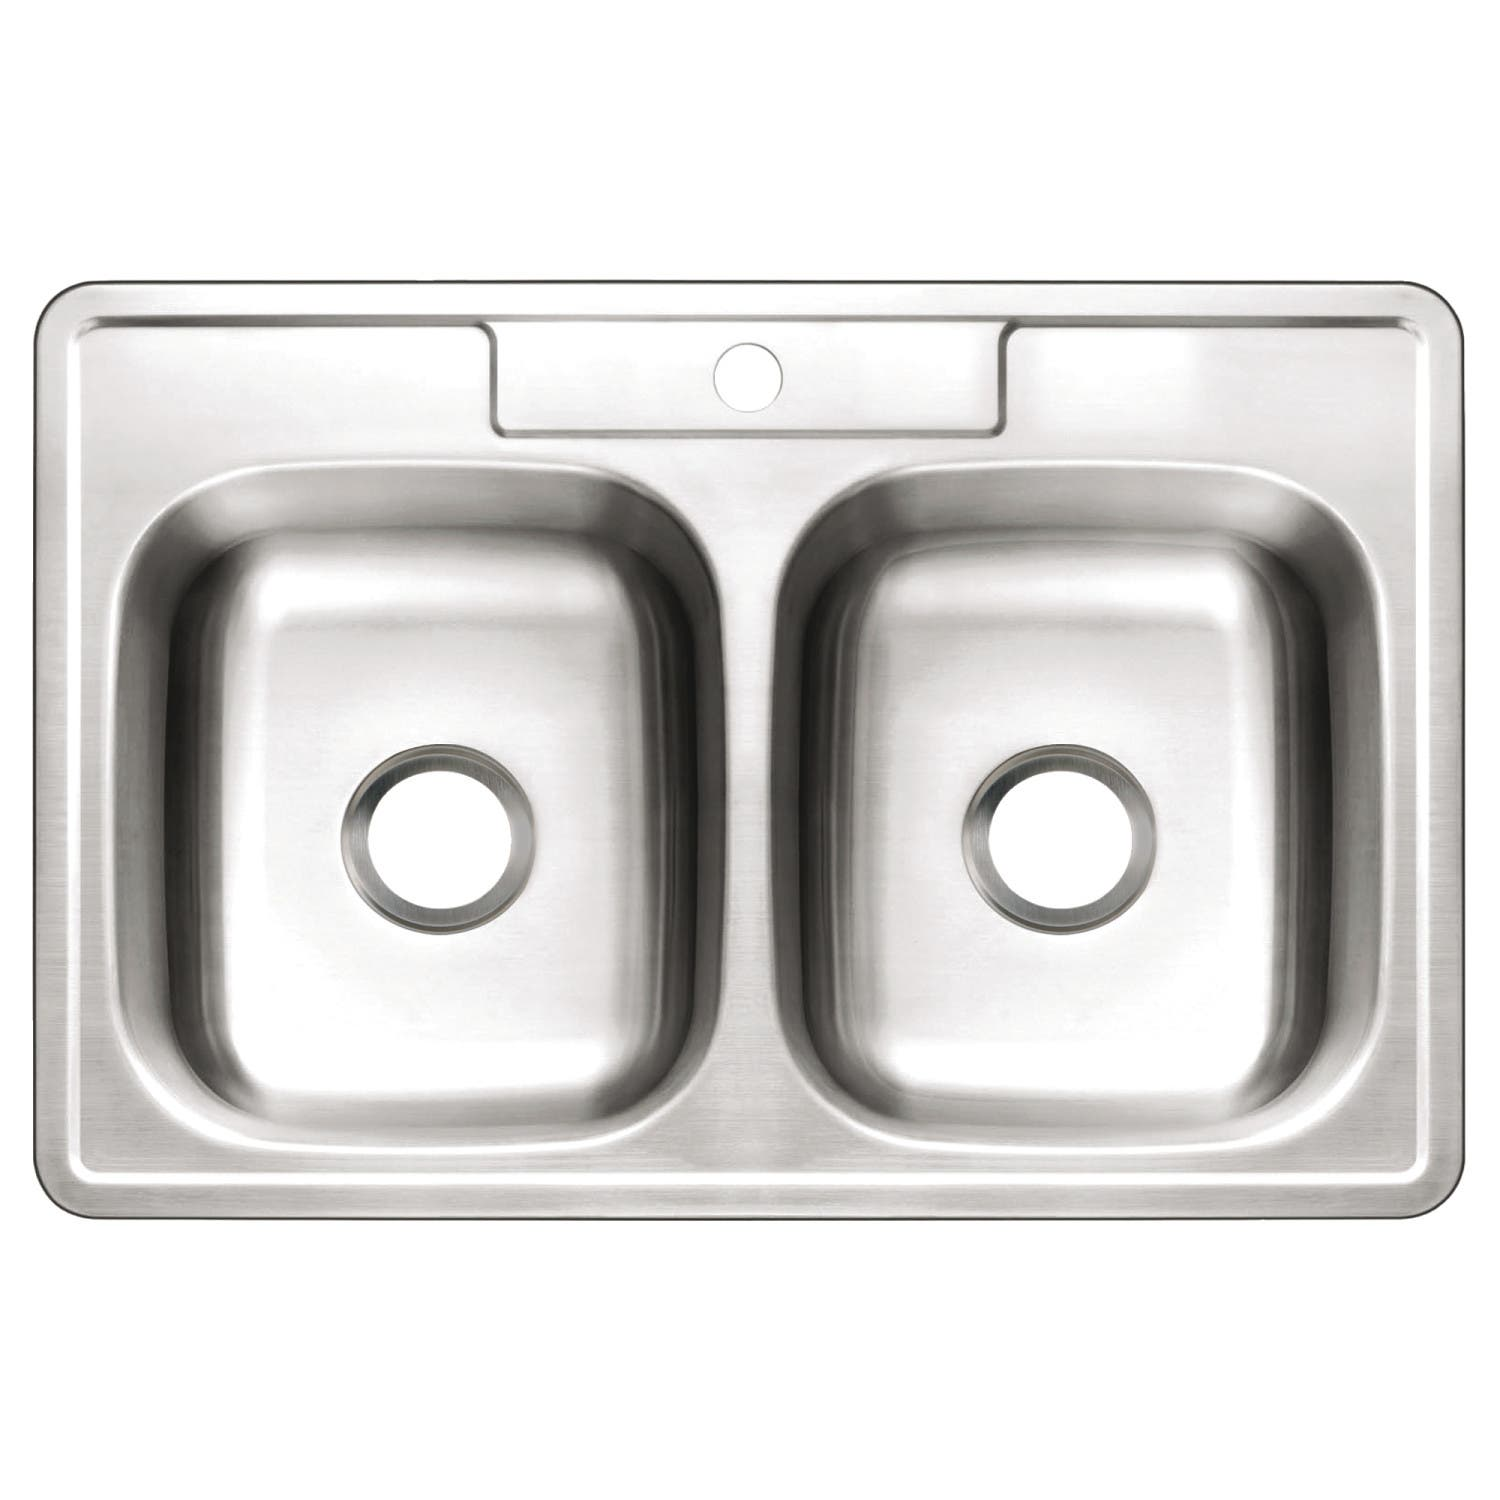 Gourmetier GKTD3322101 33x22x10 Inches Double Bowl Stainless Steel Kitchen Sink